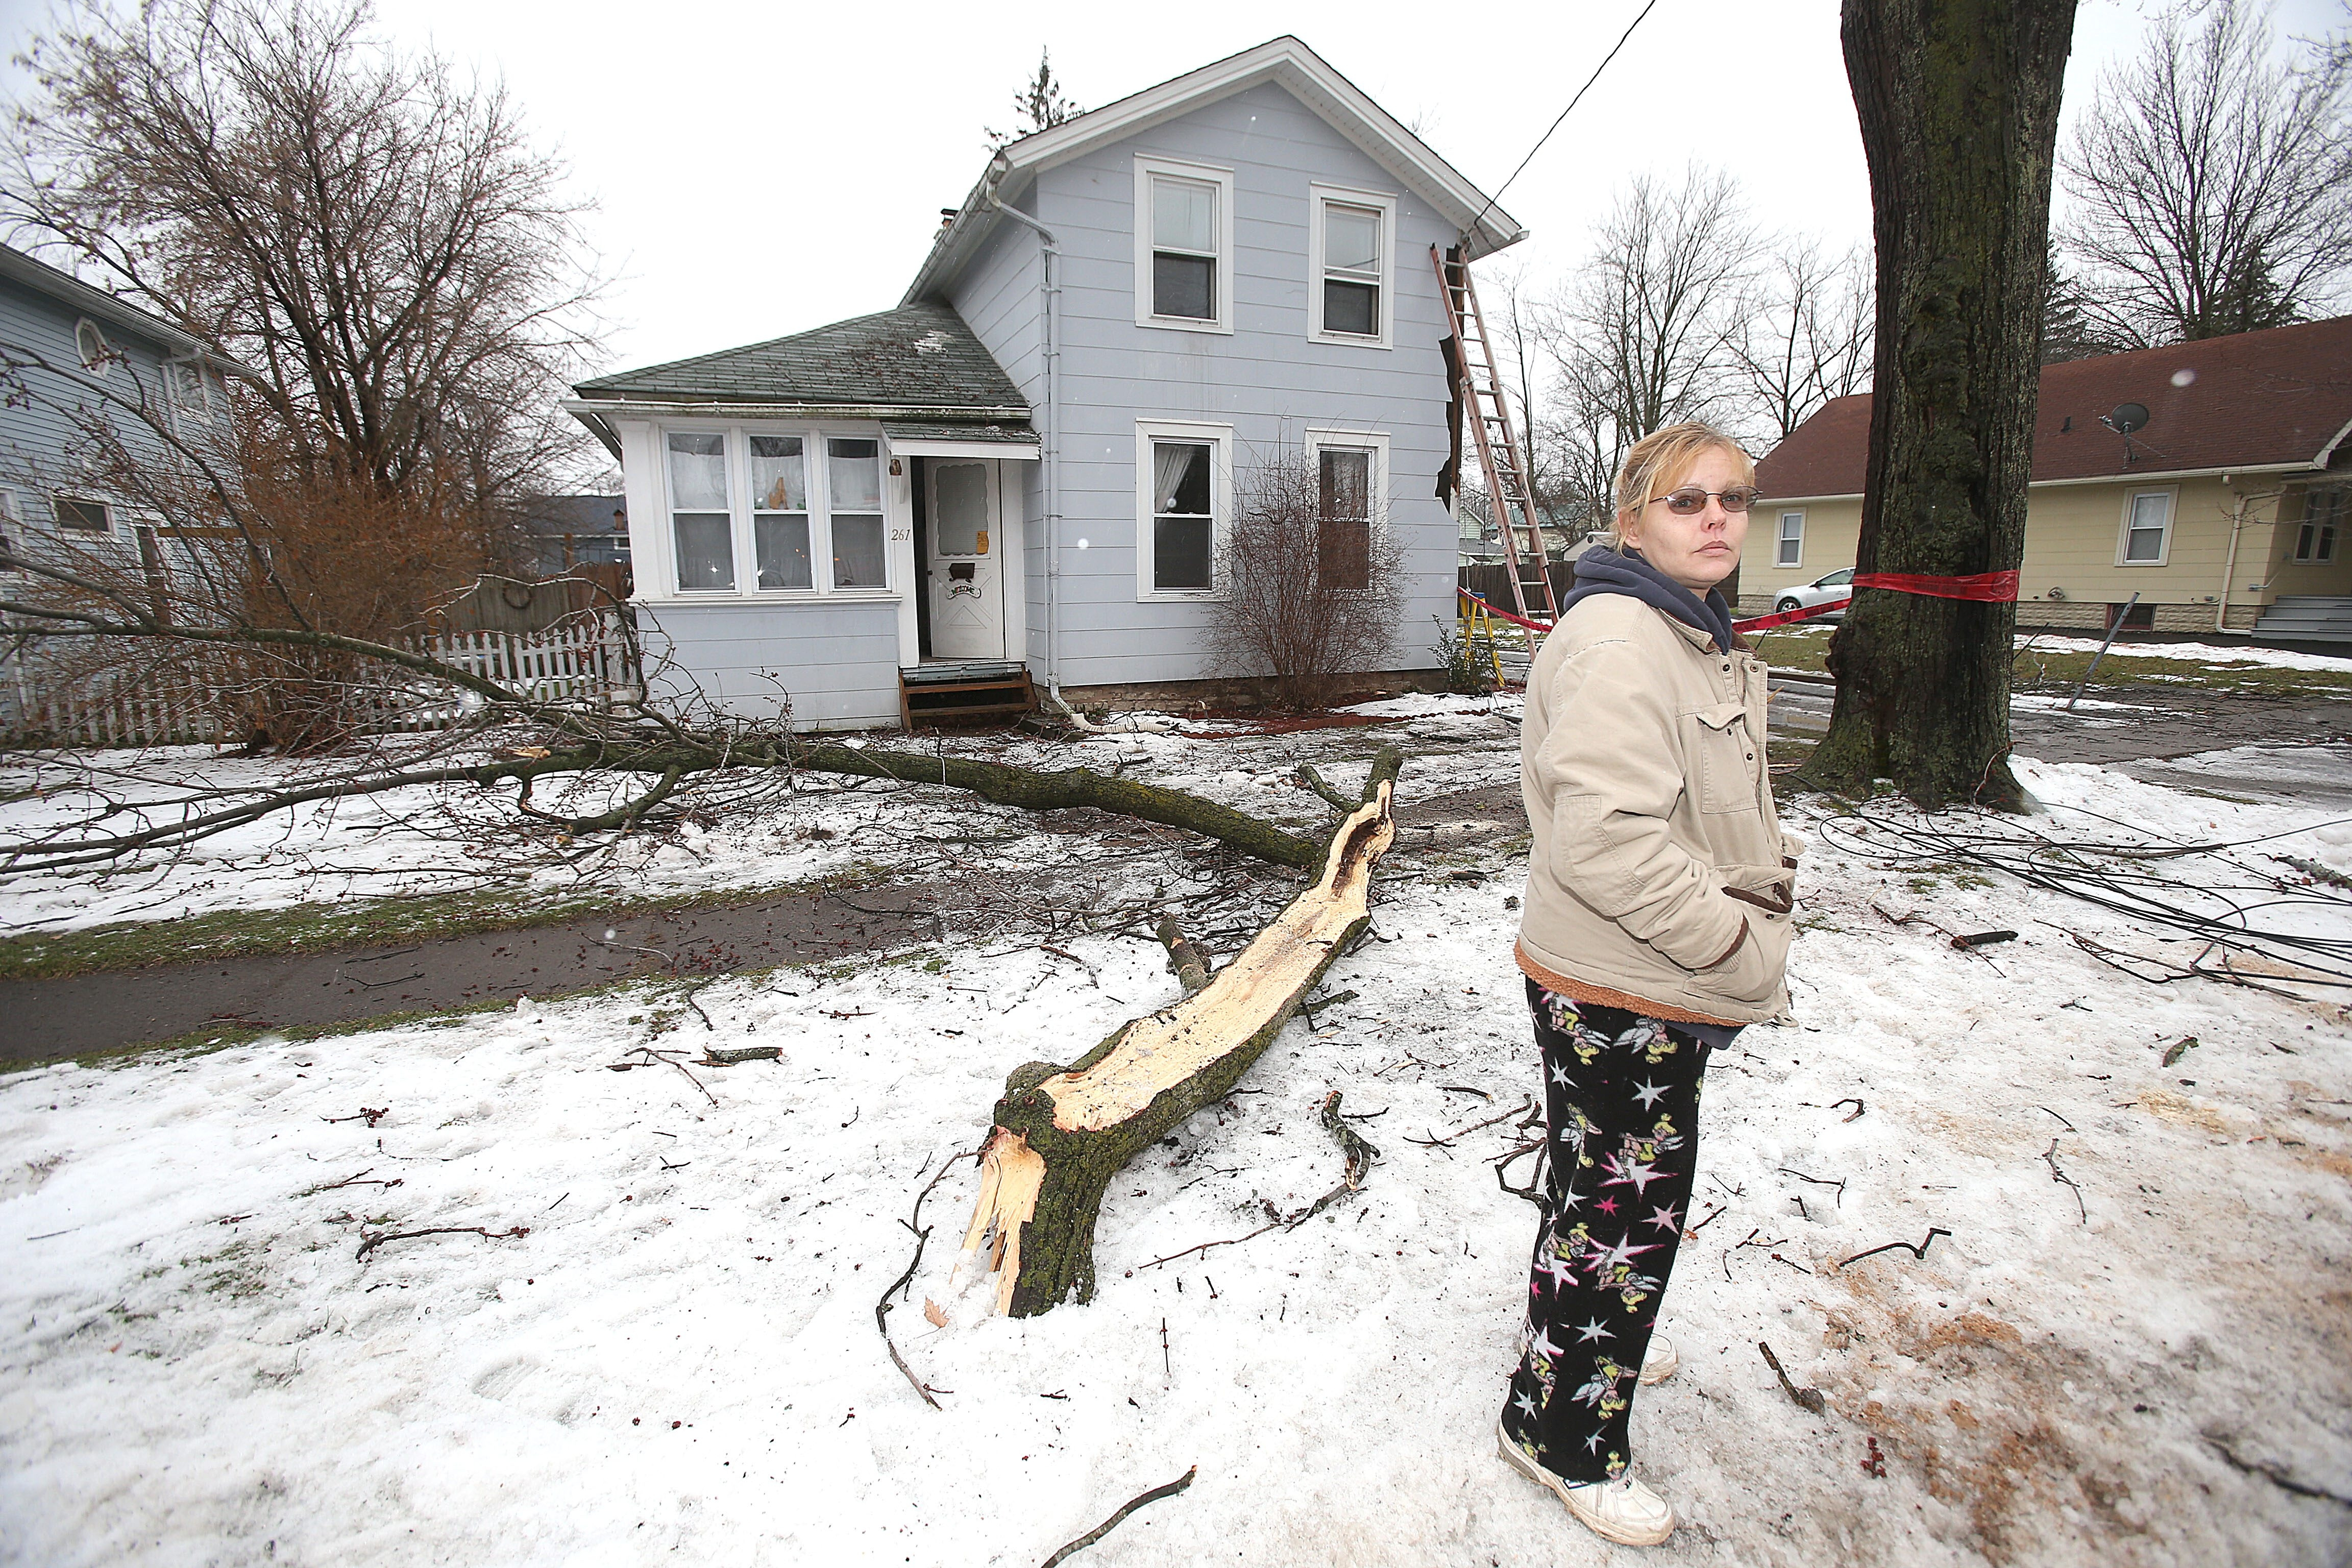 Liz Curtis, of Grand Street in Lockport, waits for crews to restore power after tree limbs ripped lines from her home. The lights came on at about 2:30 Monday afternoon after about 24 hours.